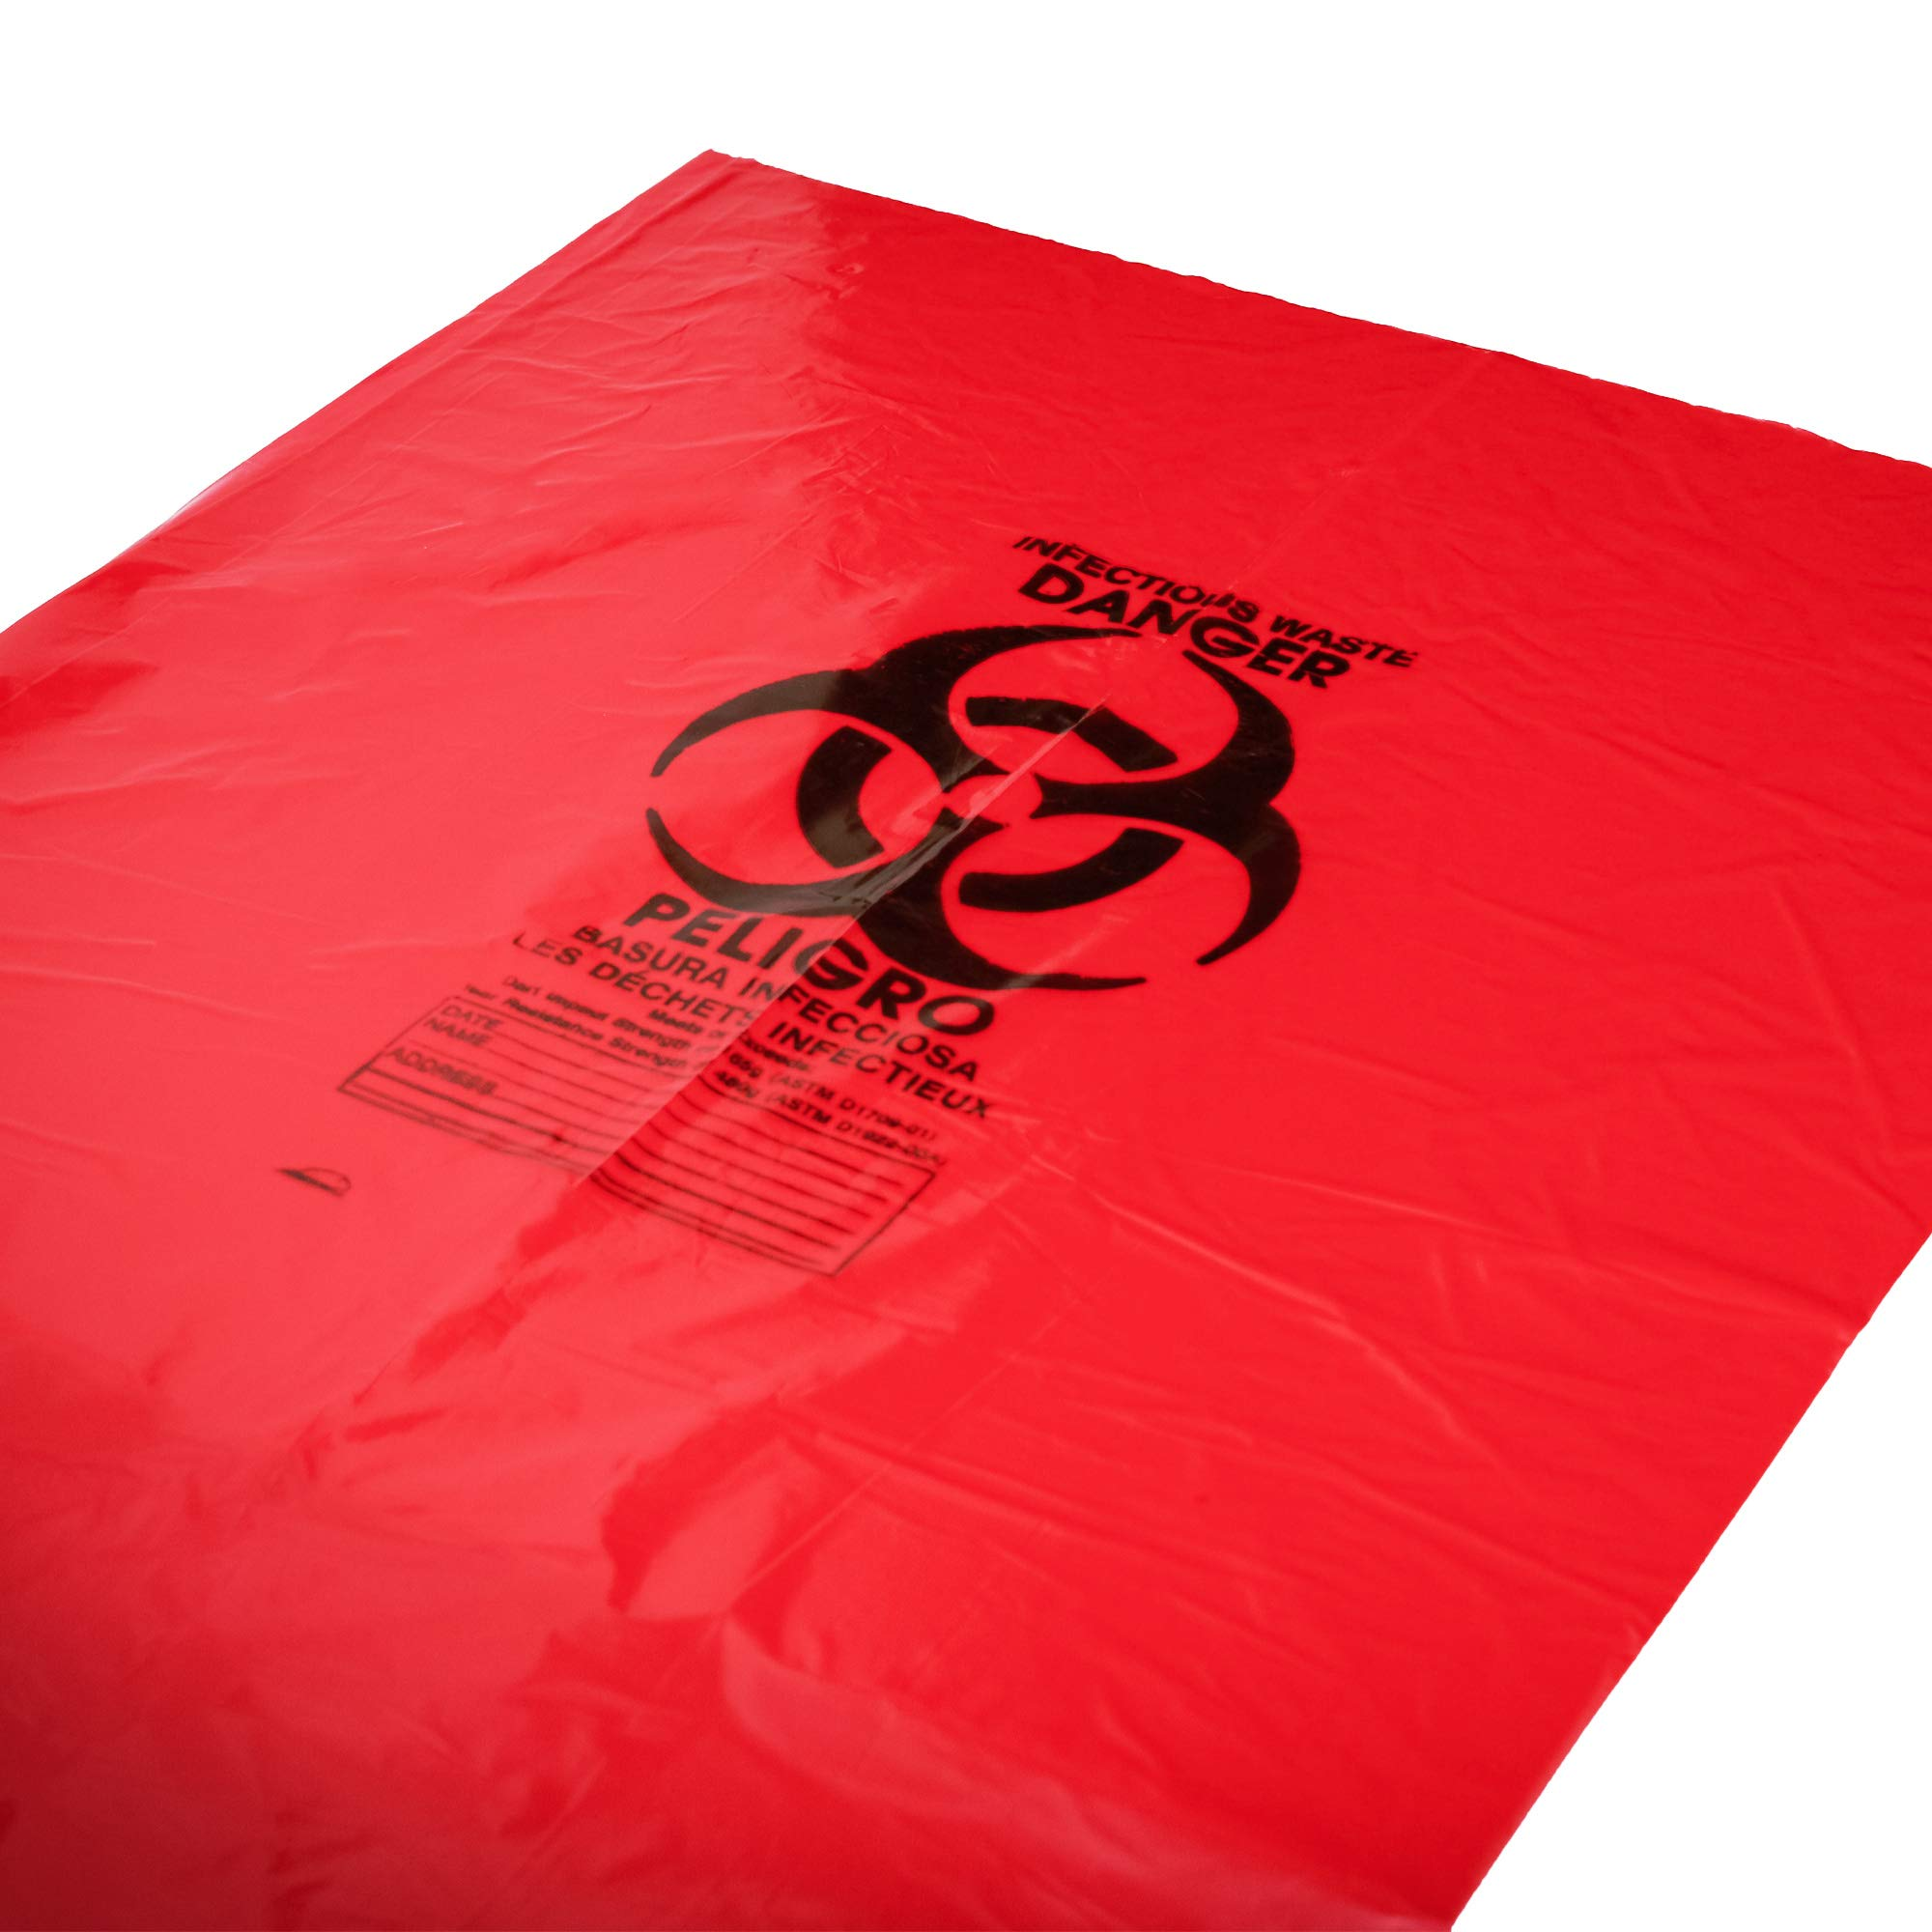 40-45 Gallon 40 x 46 Red Biohazard Bags 1.2 mil Case:100